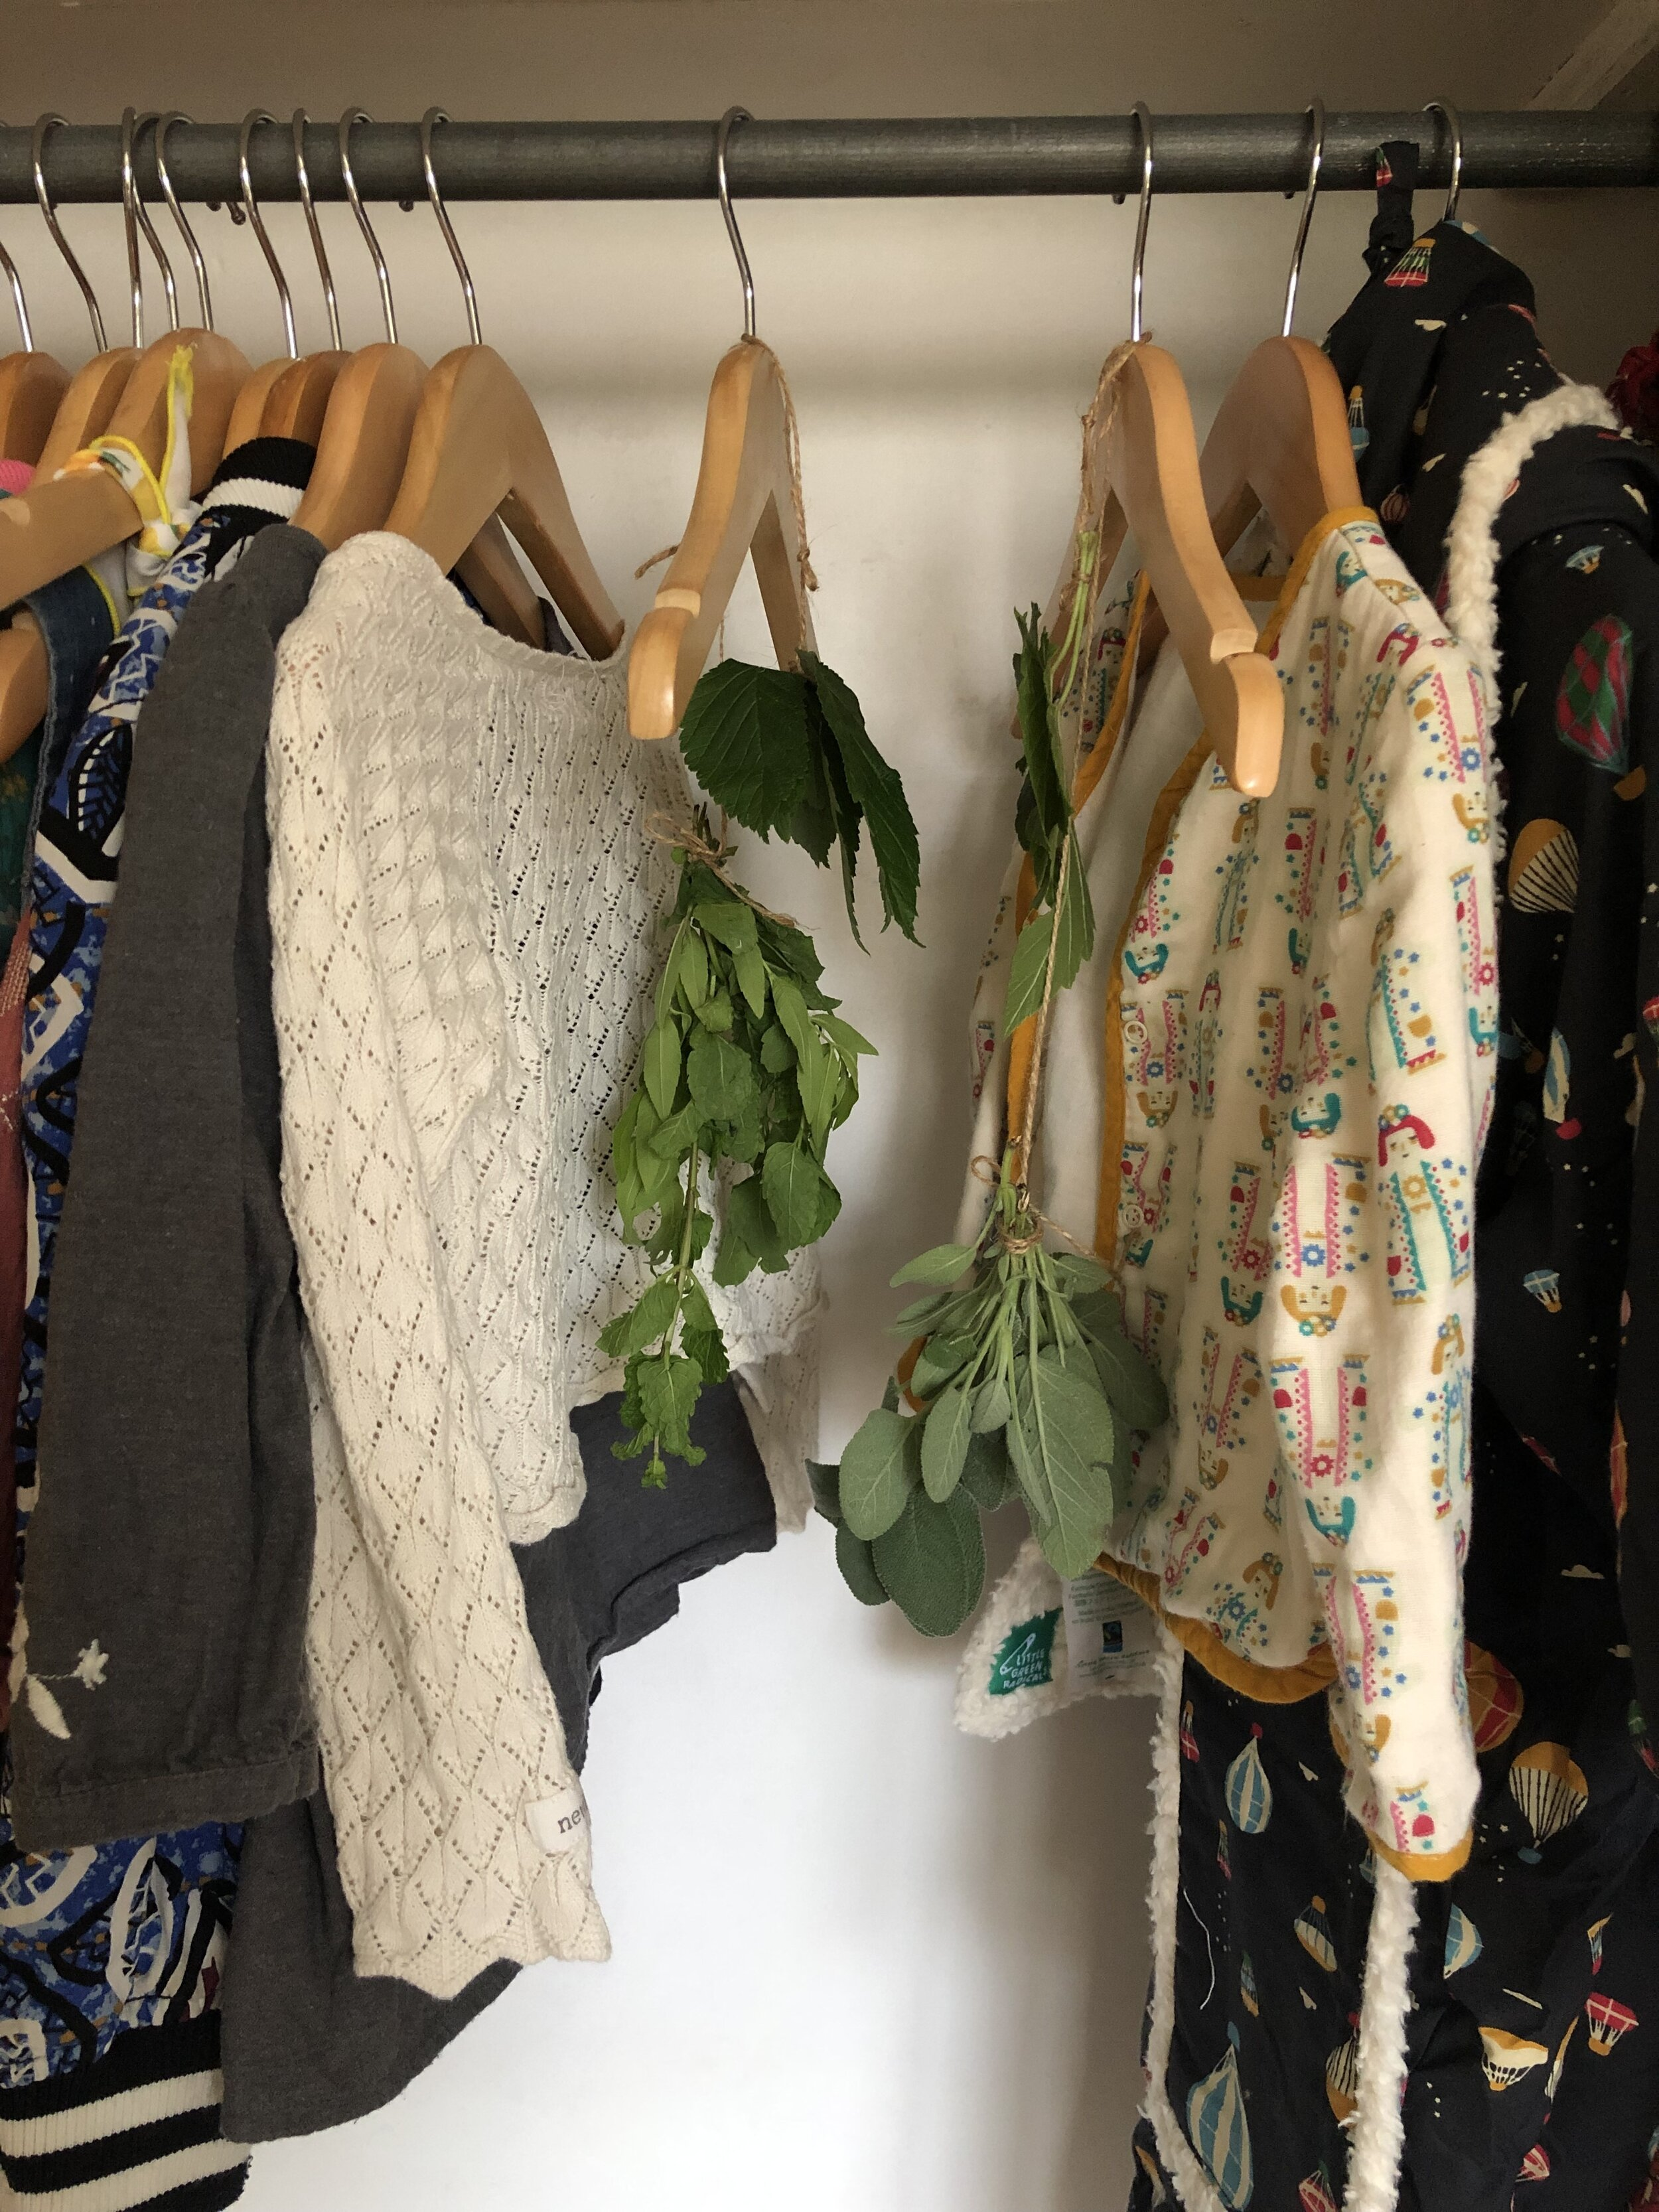 Drying herbs in the nursery cupboard - a cool and dry space!